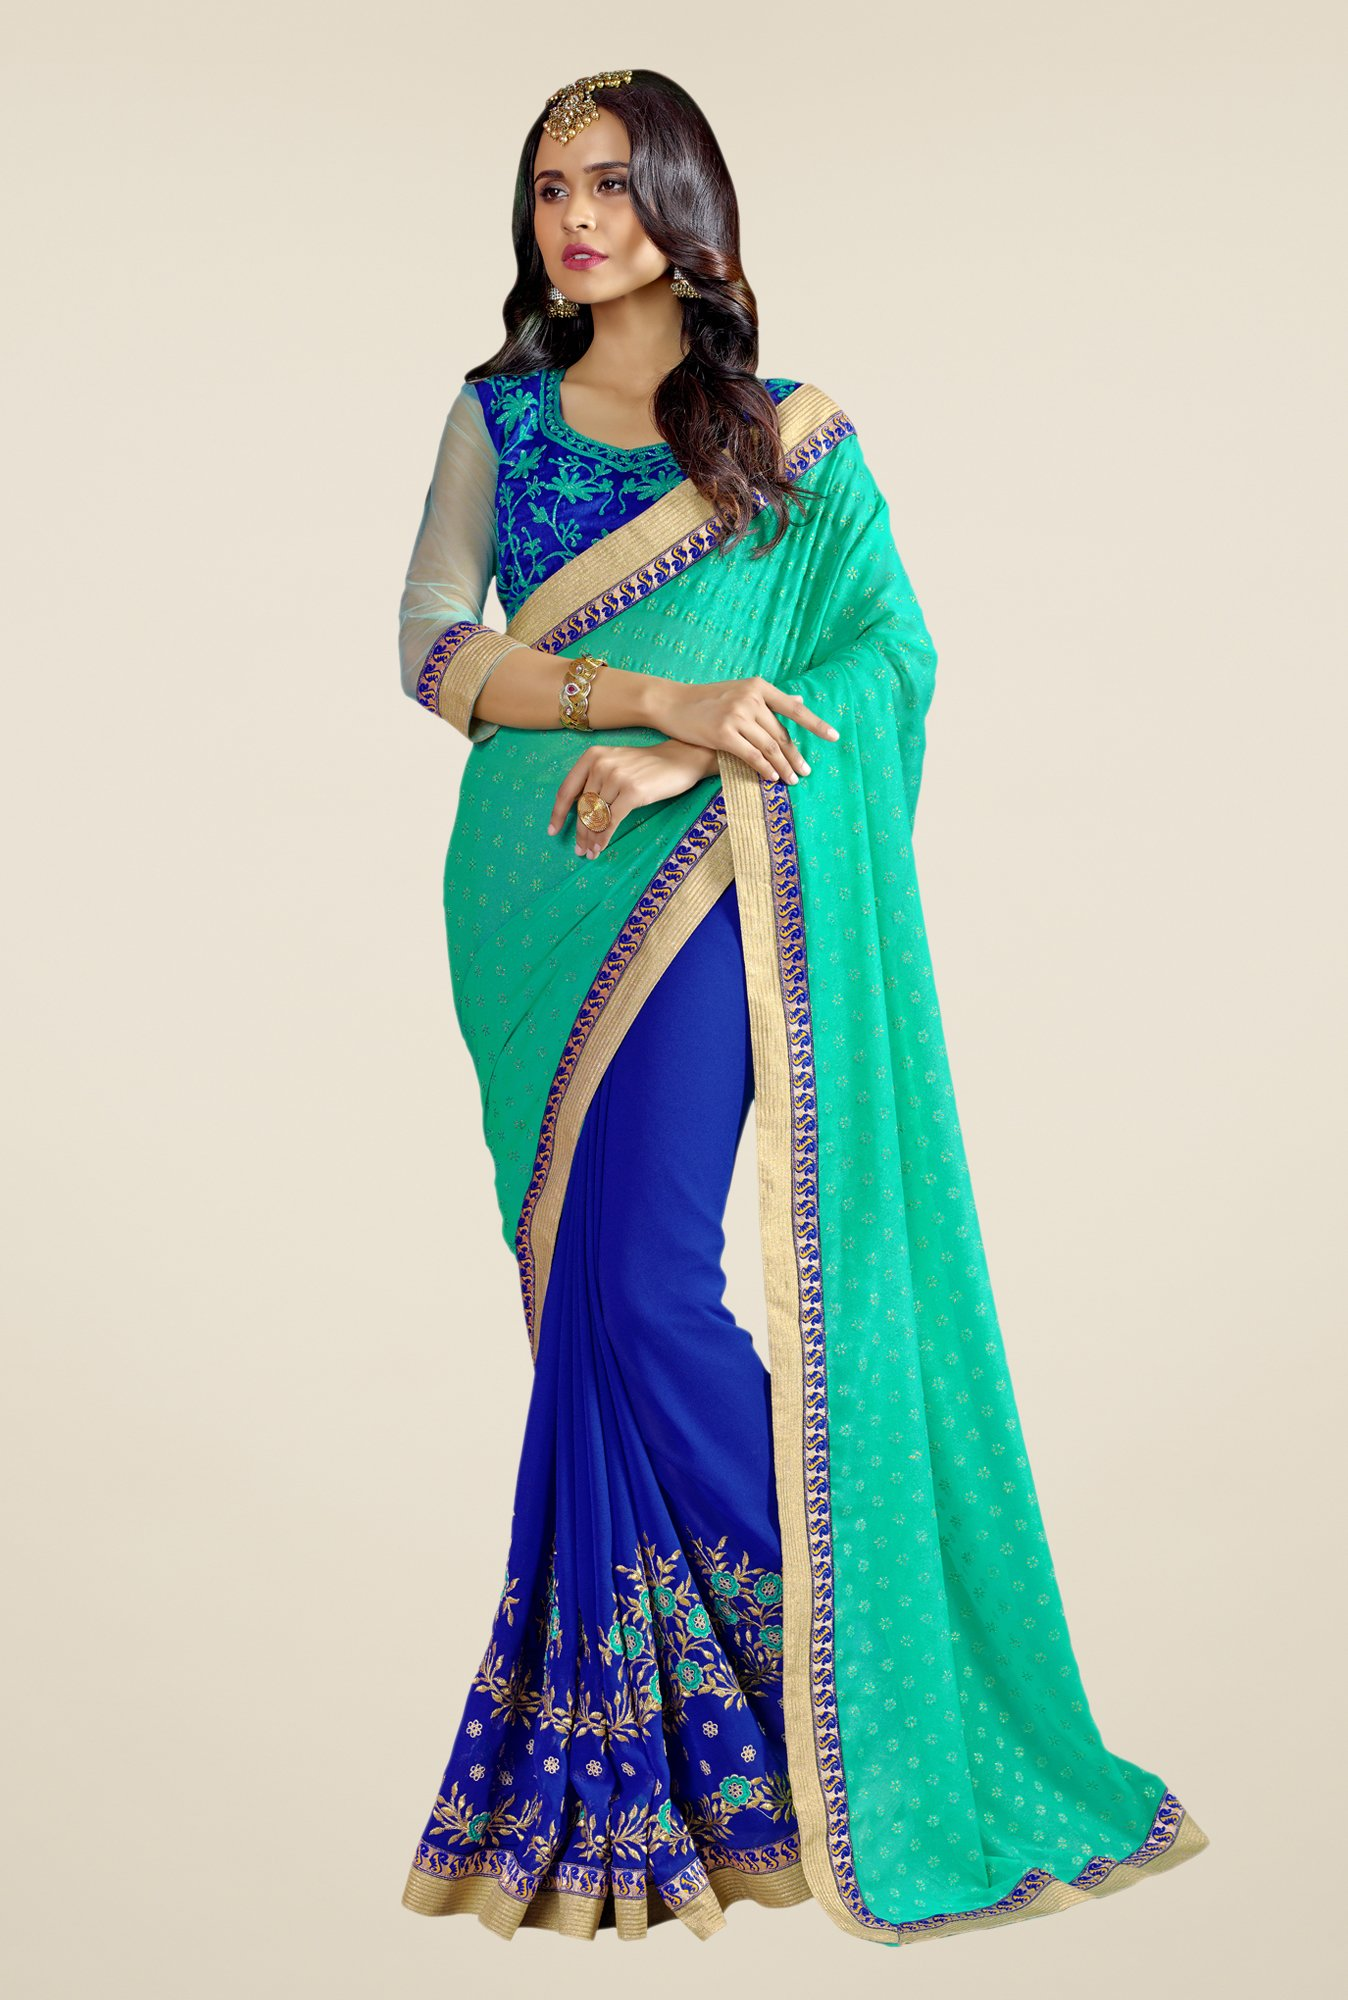 Triveni Blue & Turquoise Embroidered Faux Georgette Saree